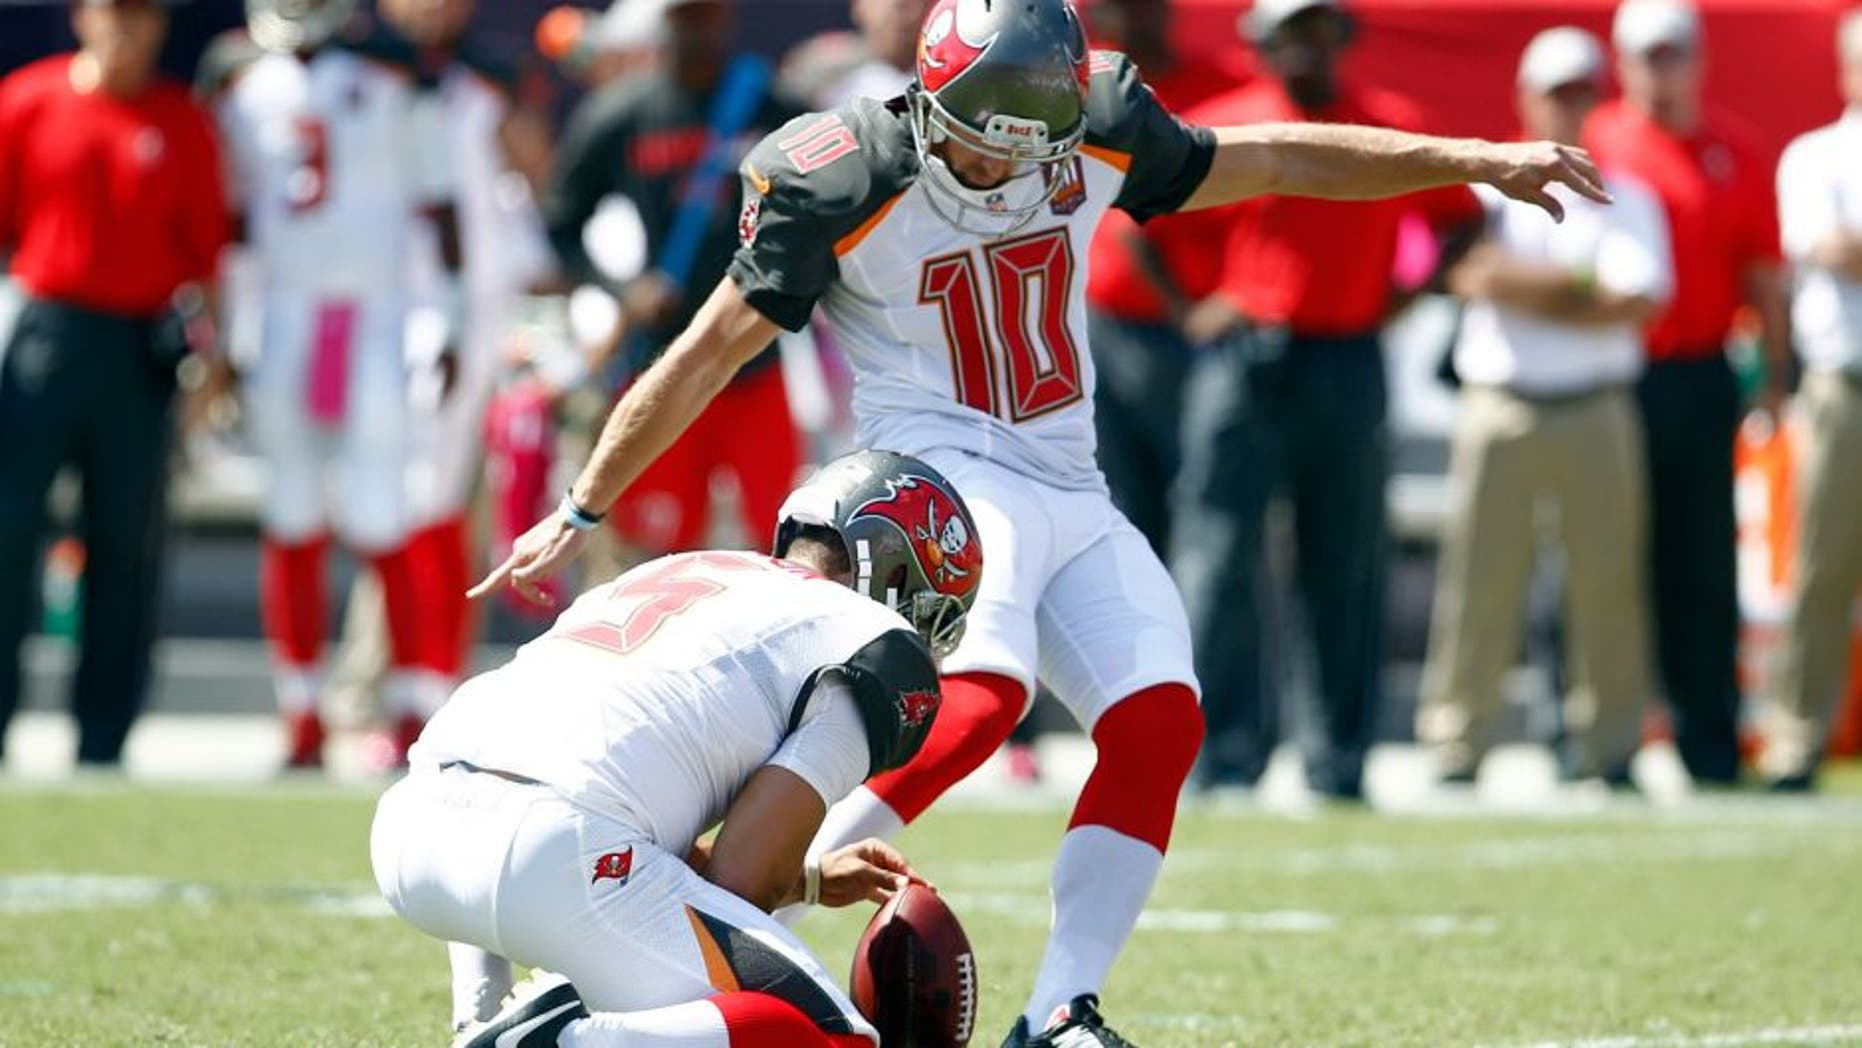 Oct 11, 2015; Tampa, FL, USA; Tampa Bay Buccaneers place kicker Connor Barth kicks his first field goal from the hold of punter Jacob Schum (5) after being re-signed by the Tampa Bay Buccaneers against the Jacksonville Jaguars during the first quarter of an NFL football game at Raymond James Stadium. Mandatory Credit: Reinhold Matay-USA TODAY Sports